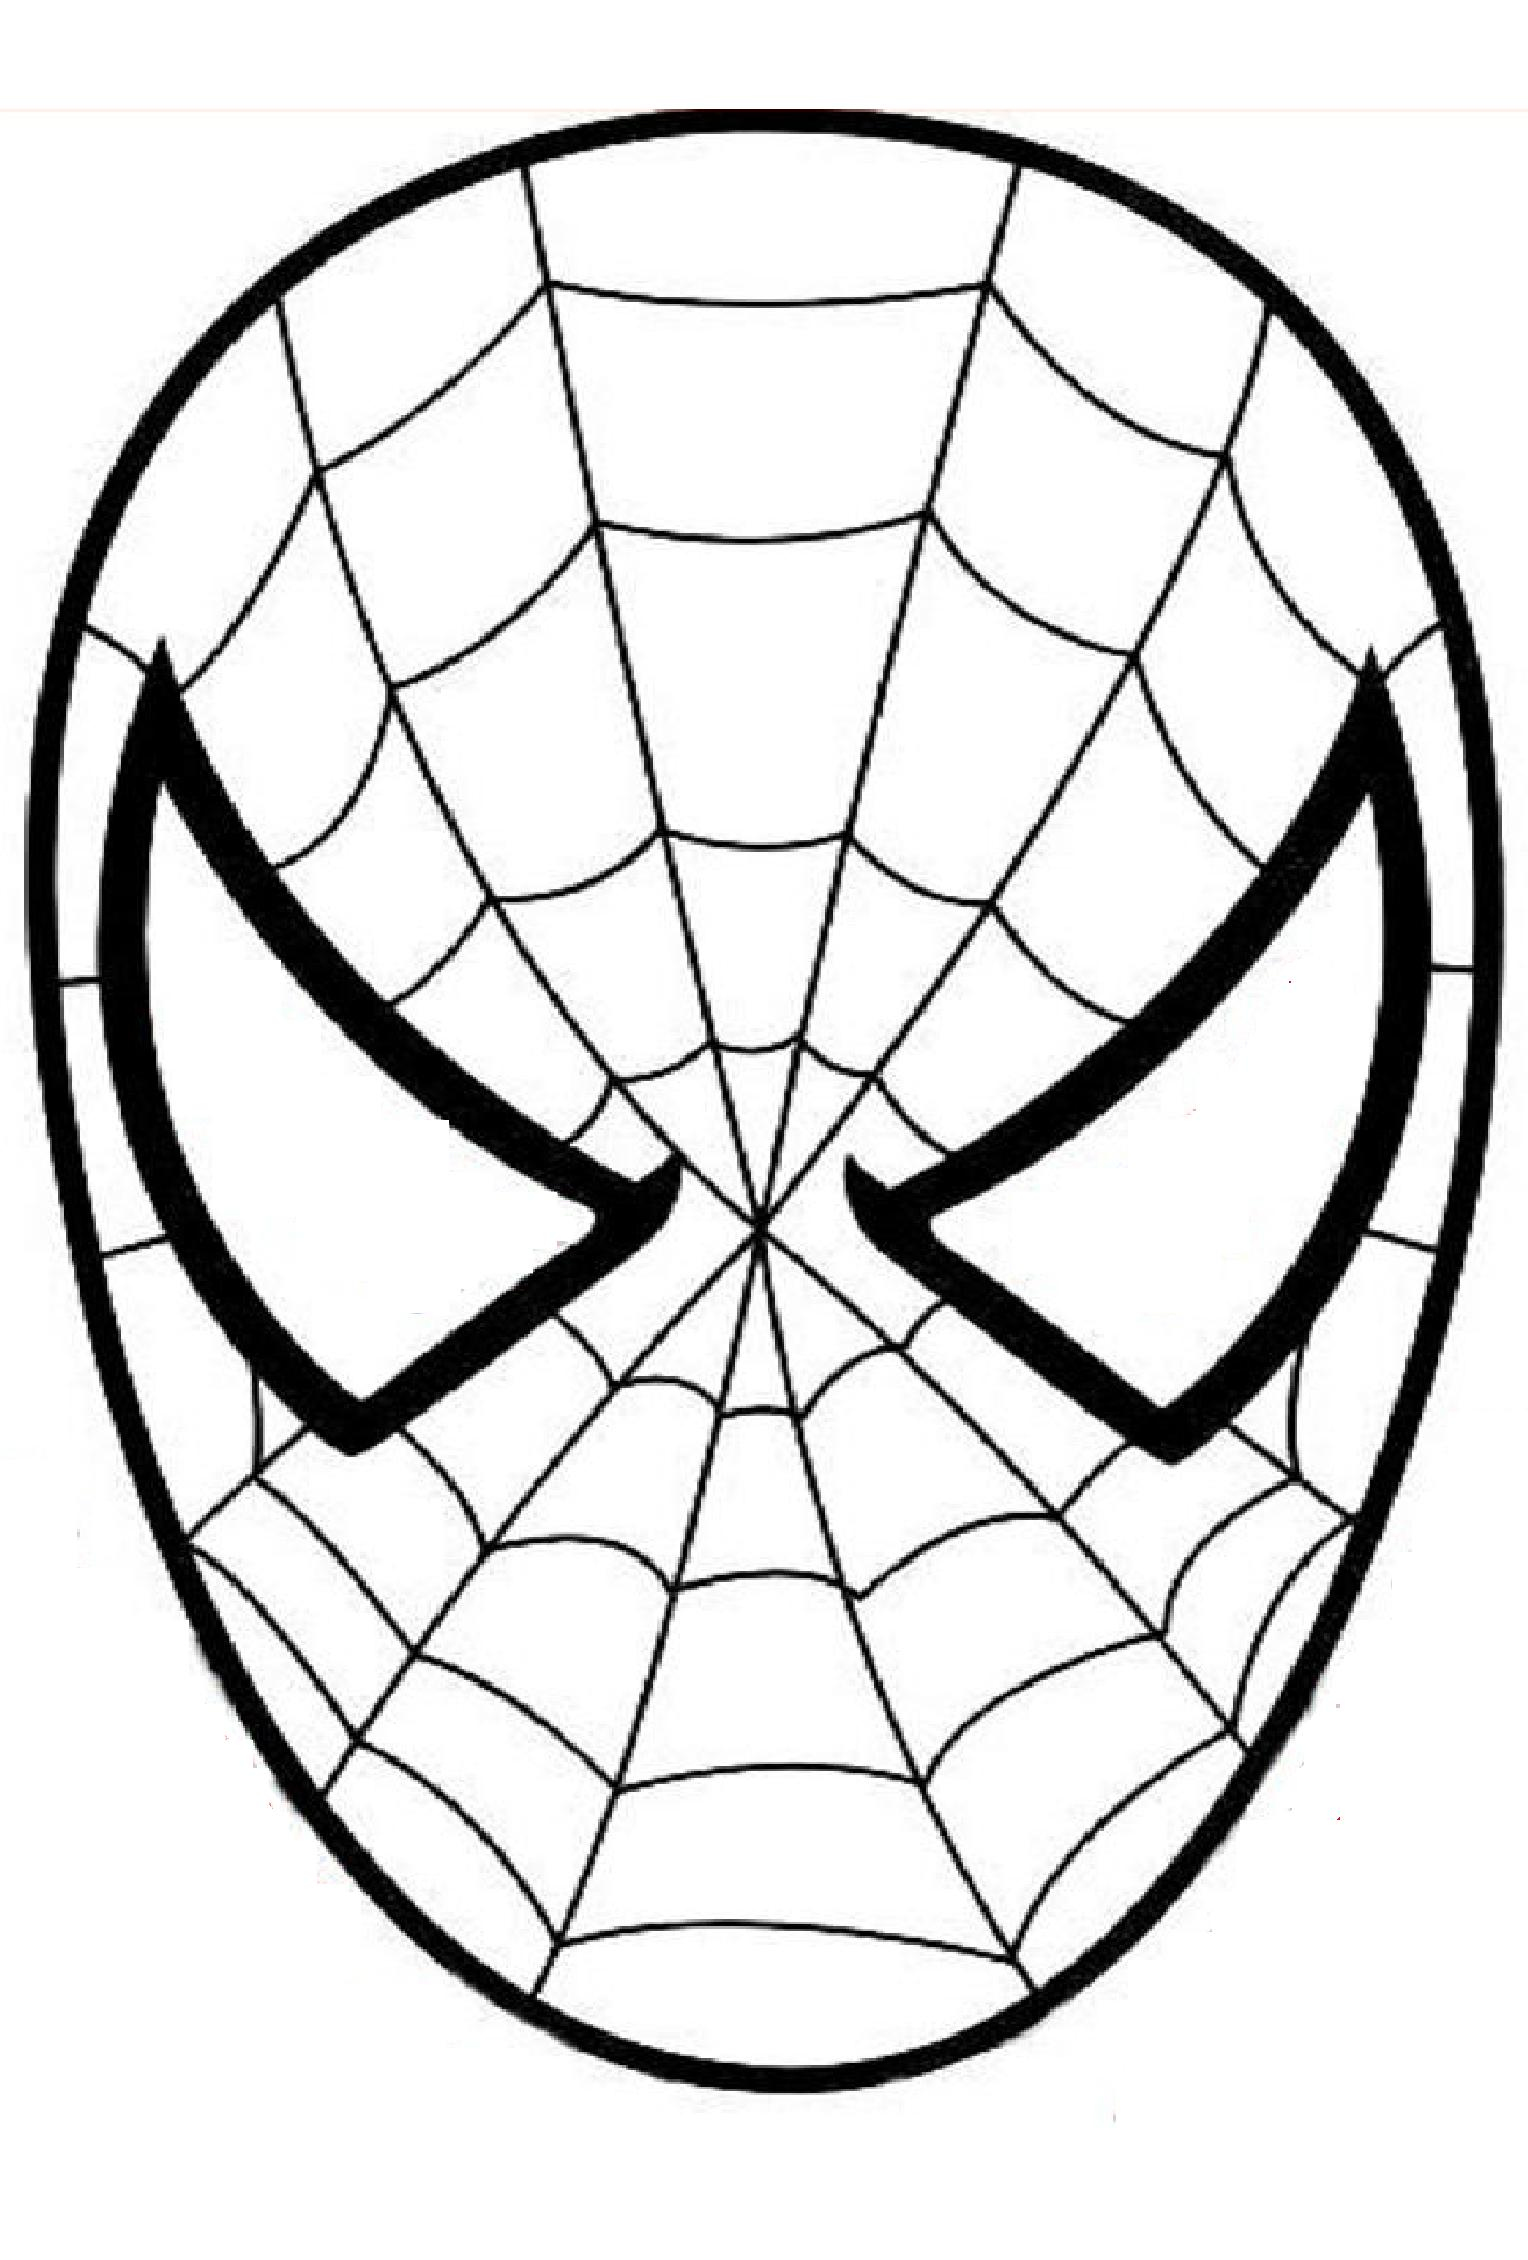 Spiderman Mask Coloring Page at GetDrawings | Free download